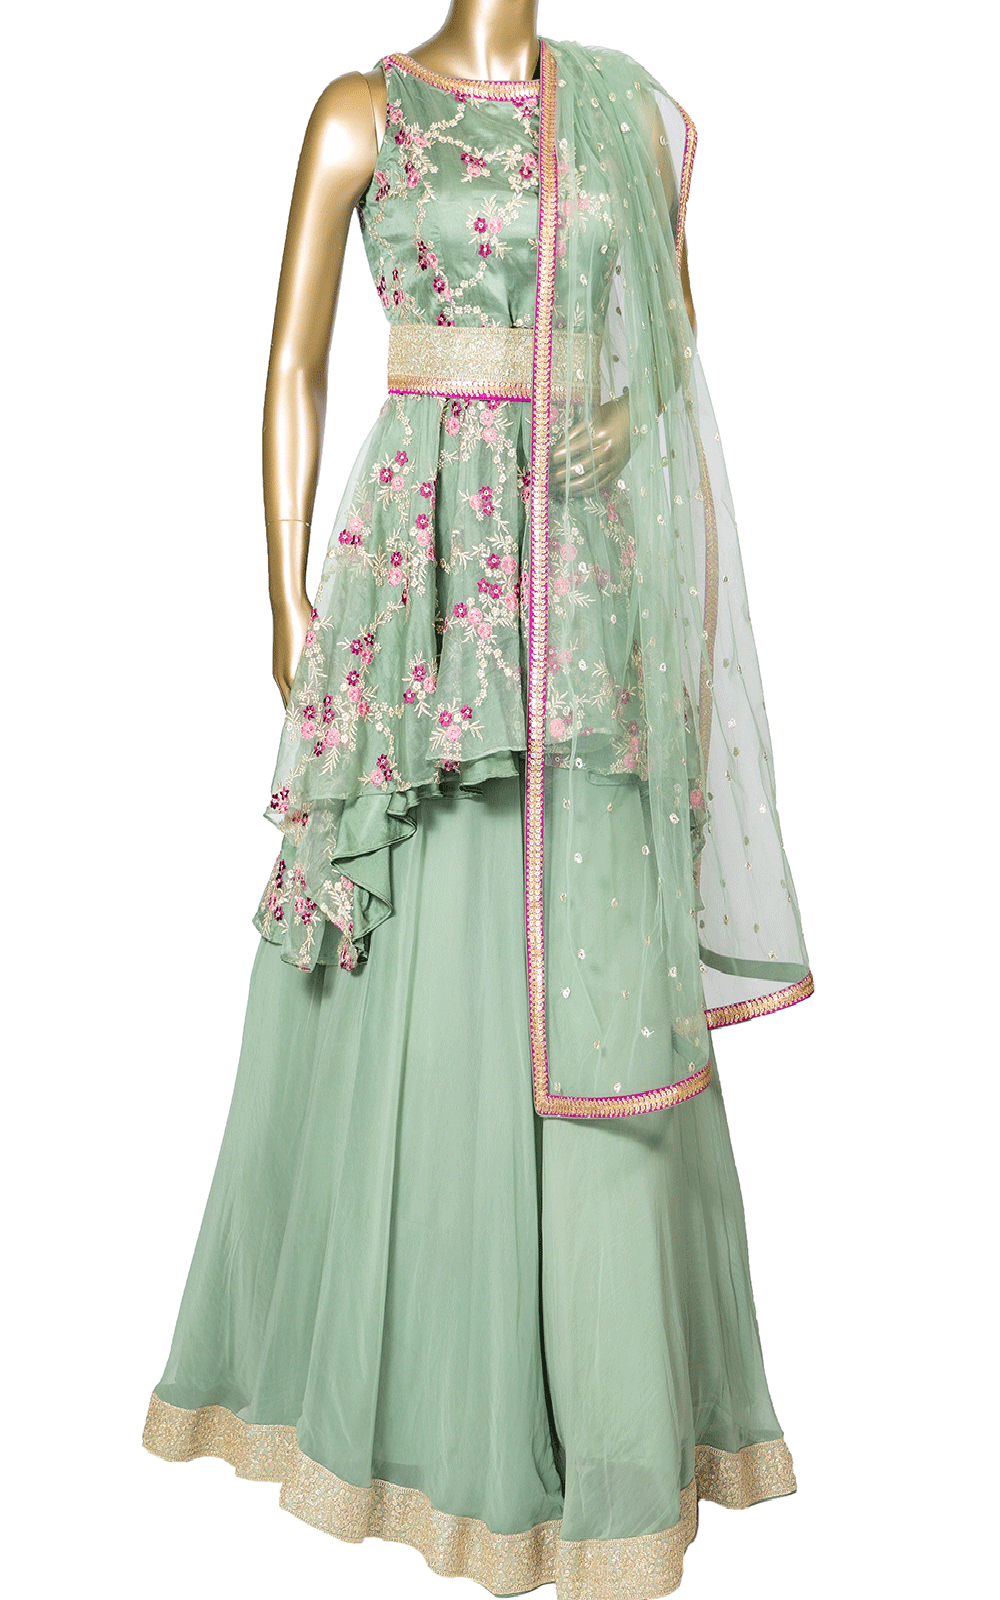 Sage Green Organza Floral Lehenga with High Low Top